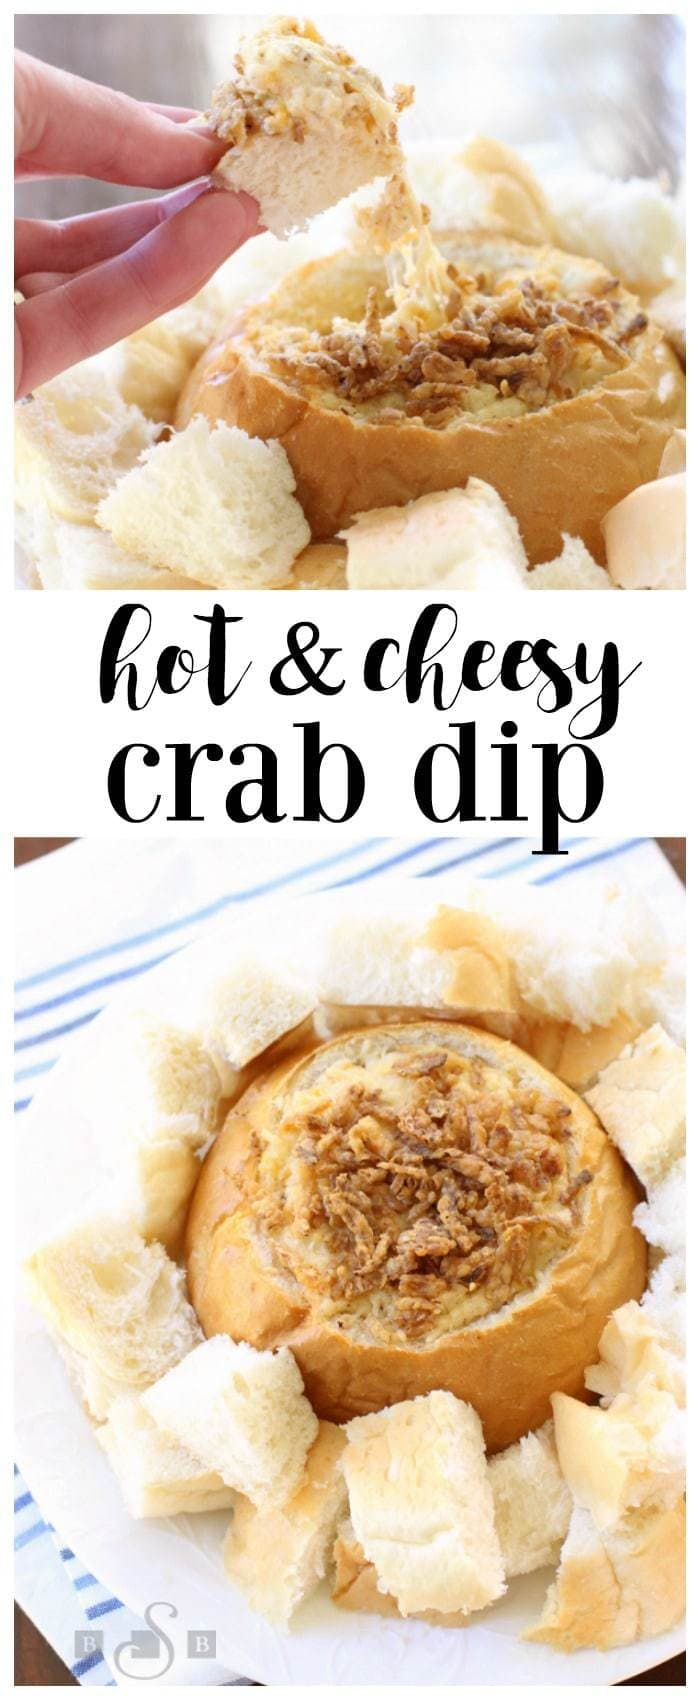 Three different types of cheeses combine with delicate crab and fresh bread to make this recipe unforgettable. A perfect appetizer for any party or get-together, this Cheesy Crab Dip is a crowd pleaser.